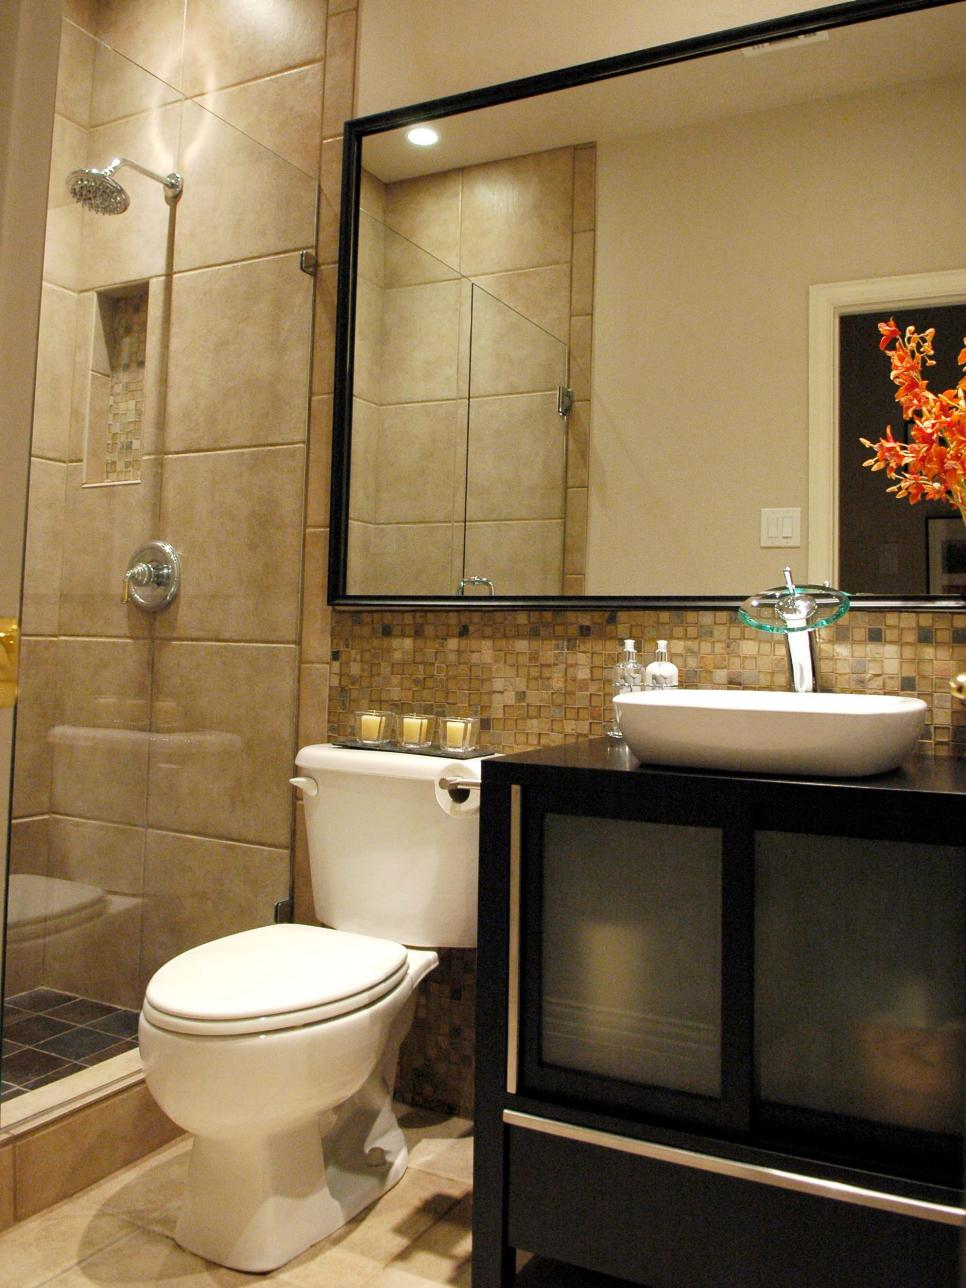 Bathrooms on a budget our 10 favorites from rate my space diy for Remodel a bathroom on a budget